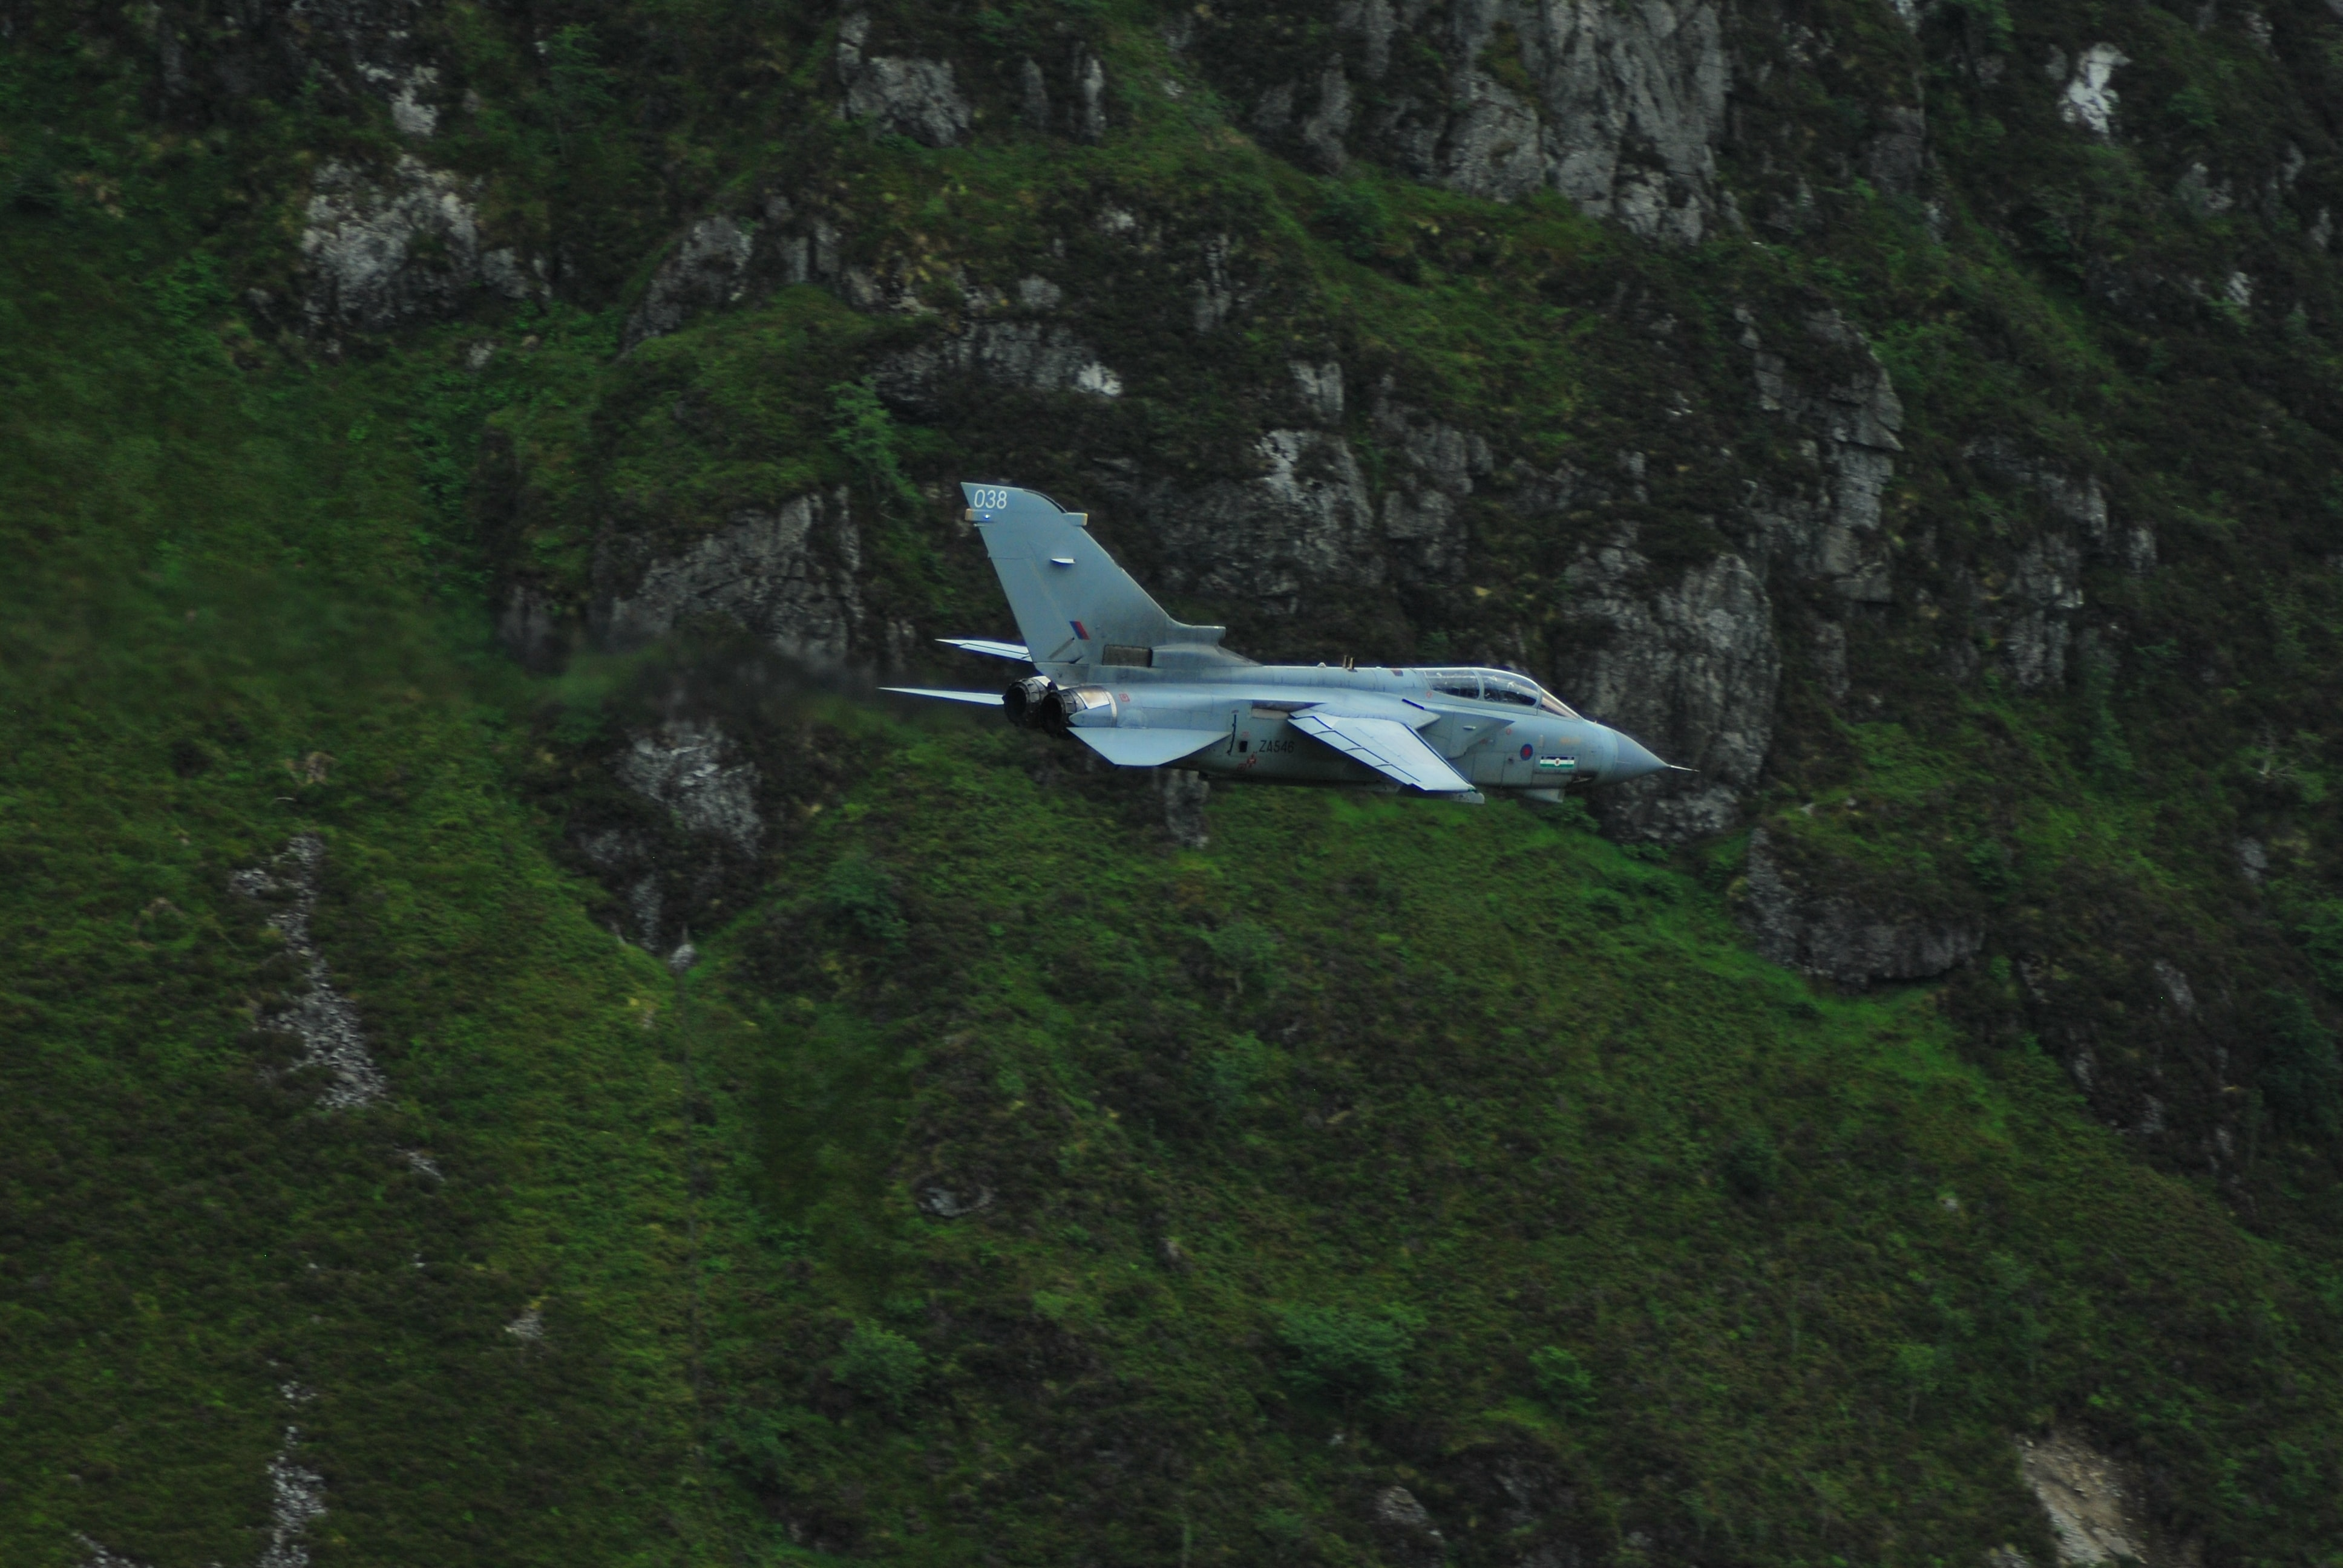 A small plane flies in front of a green mossy mountain